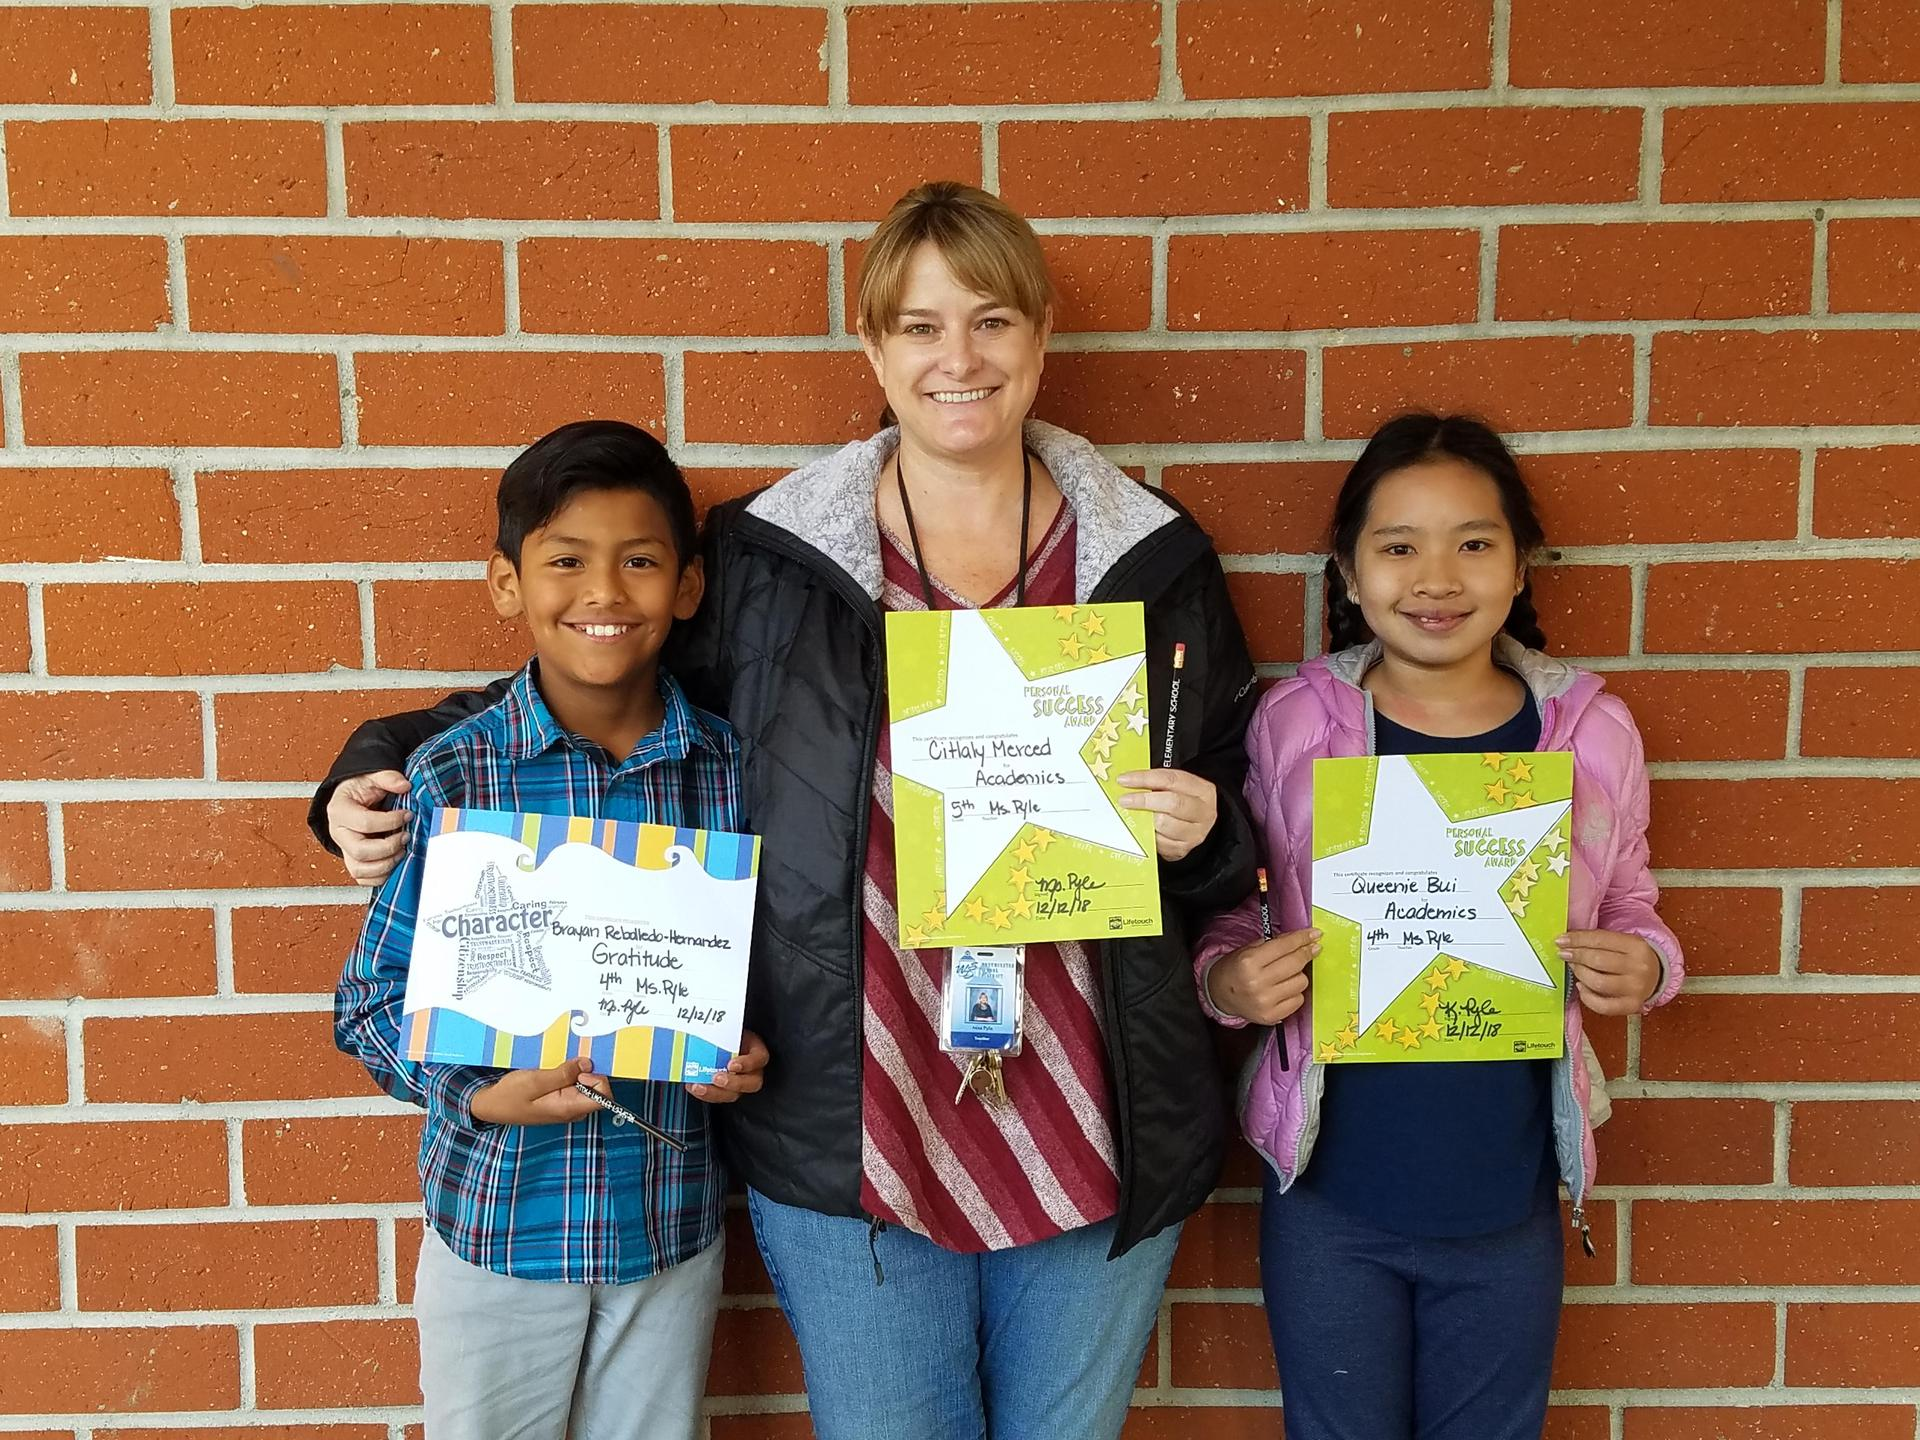 Ms. Pyle's 4th & 5th Grade Winners